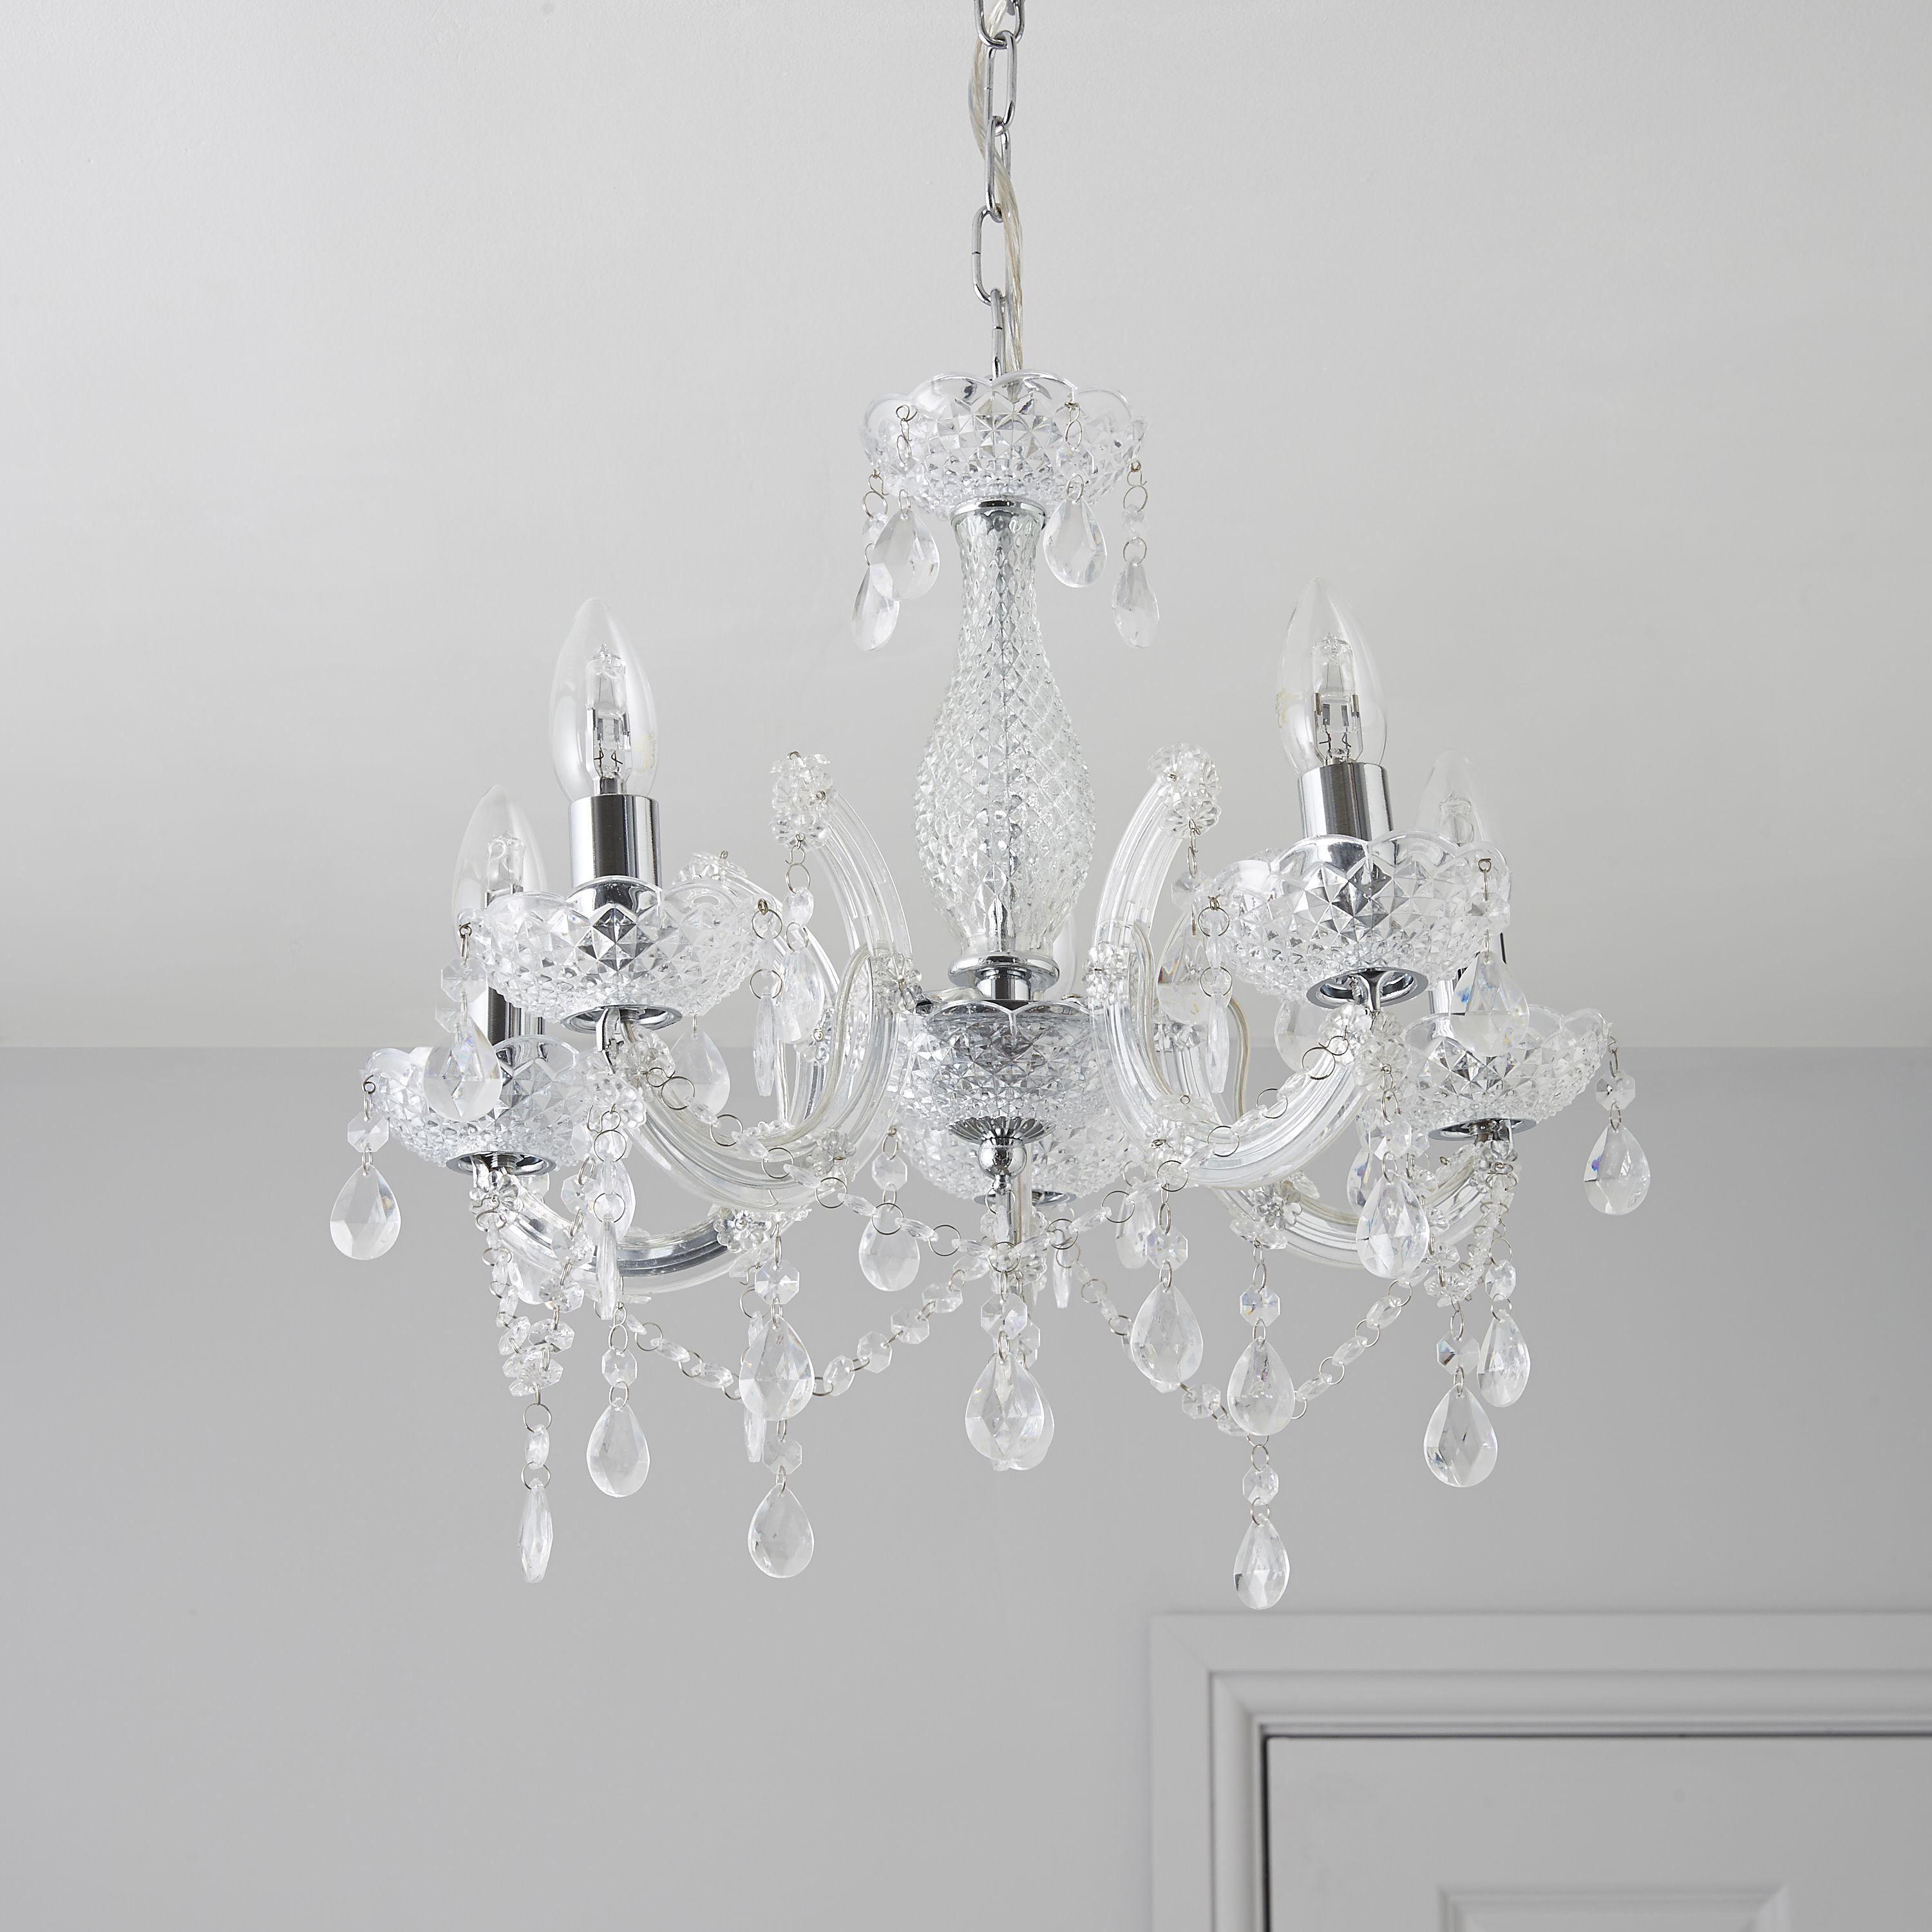 Outdoor Ceiling Lights B And Q : Annelise crystal droplets silver lamp pendant ceiling